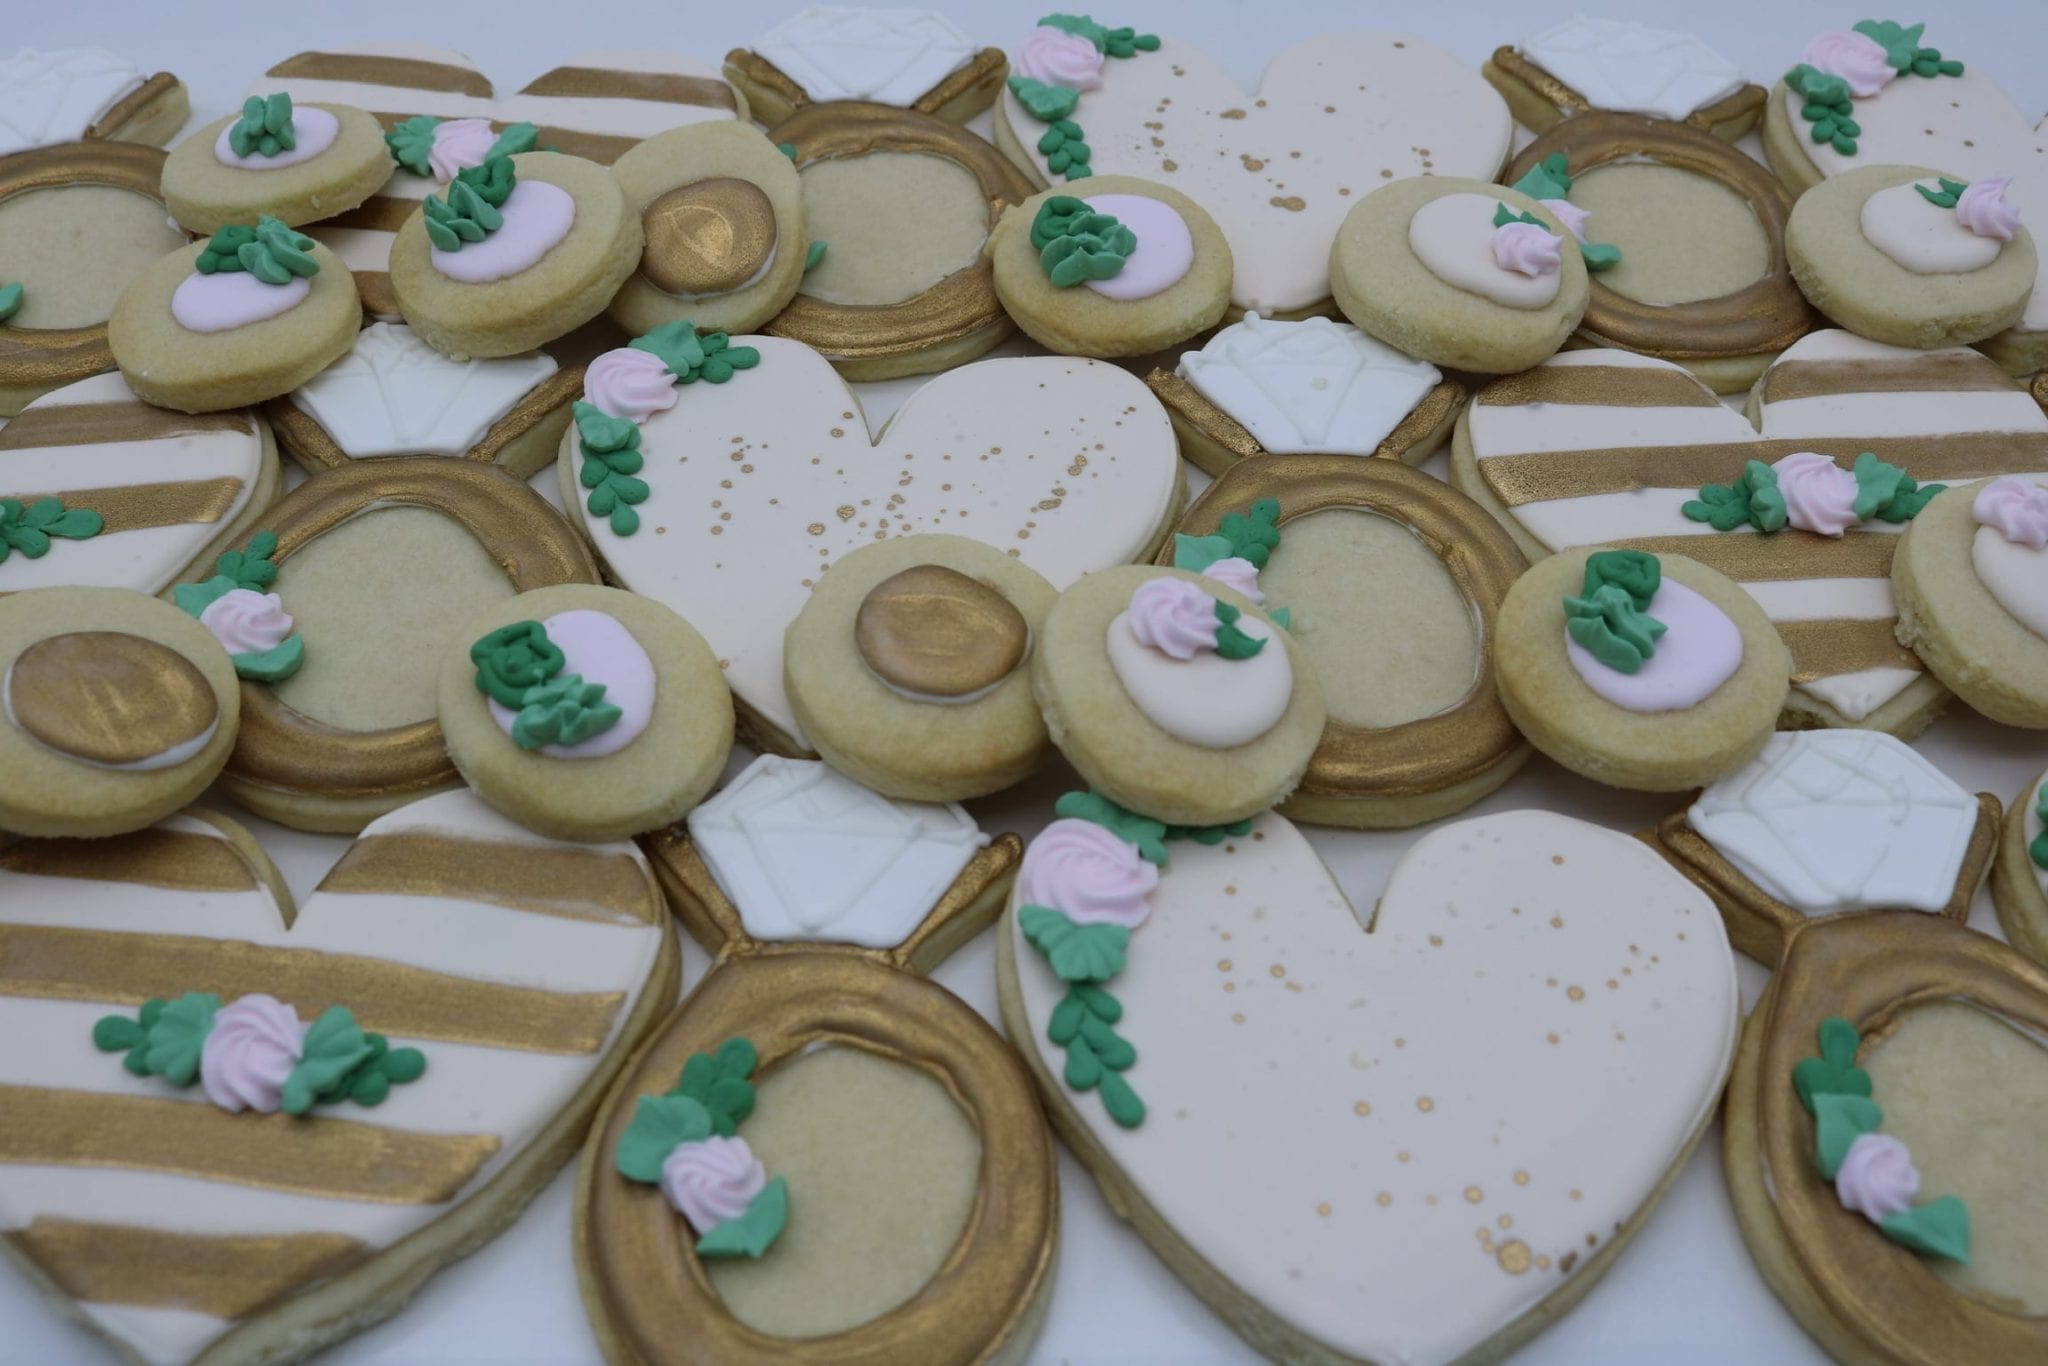 Blush and Gold Heart and Ring Wedding Shower Cookies | 3 Sweet Girls Cakery